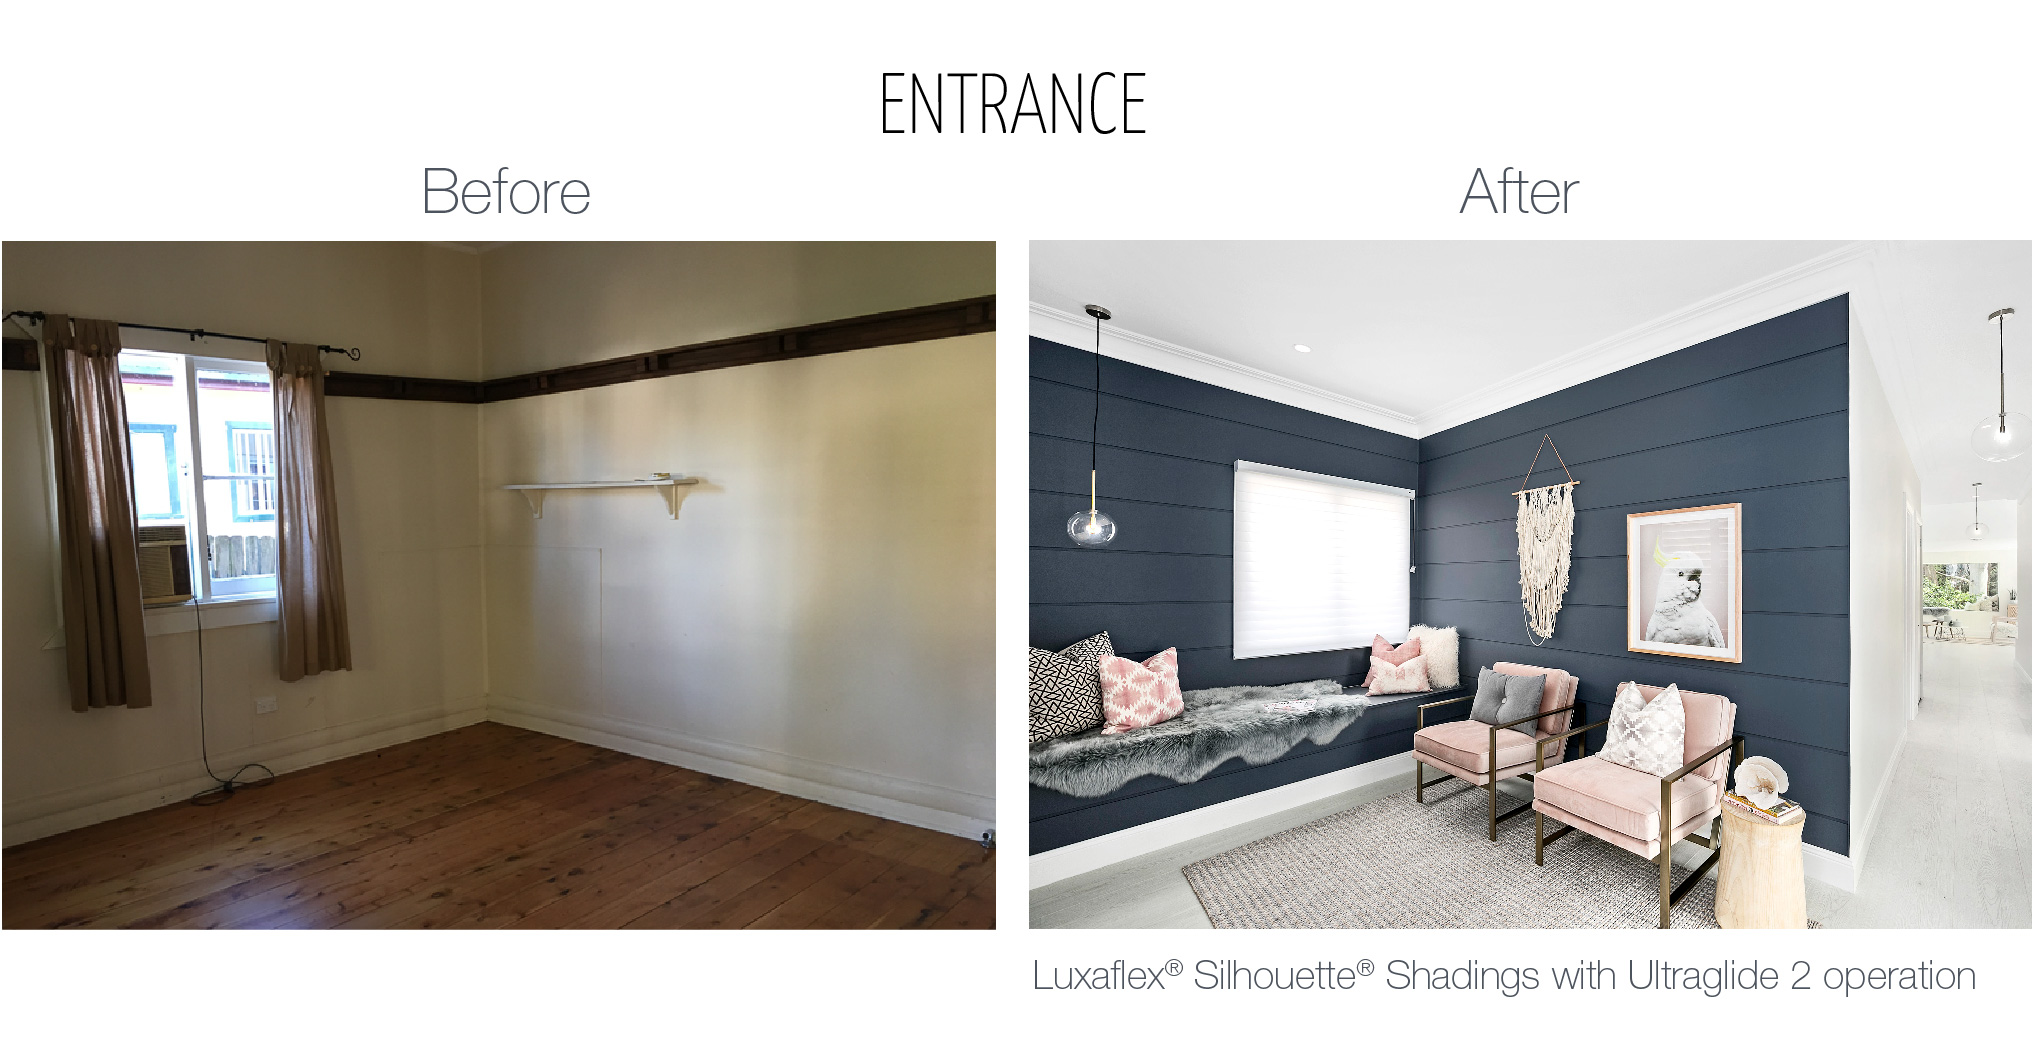 Luxaflex - Blog - Three Birds - Entrance